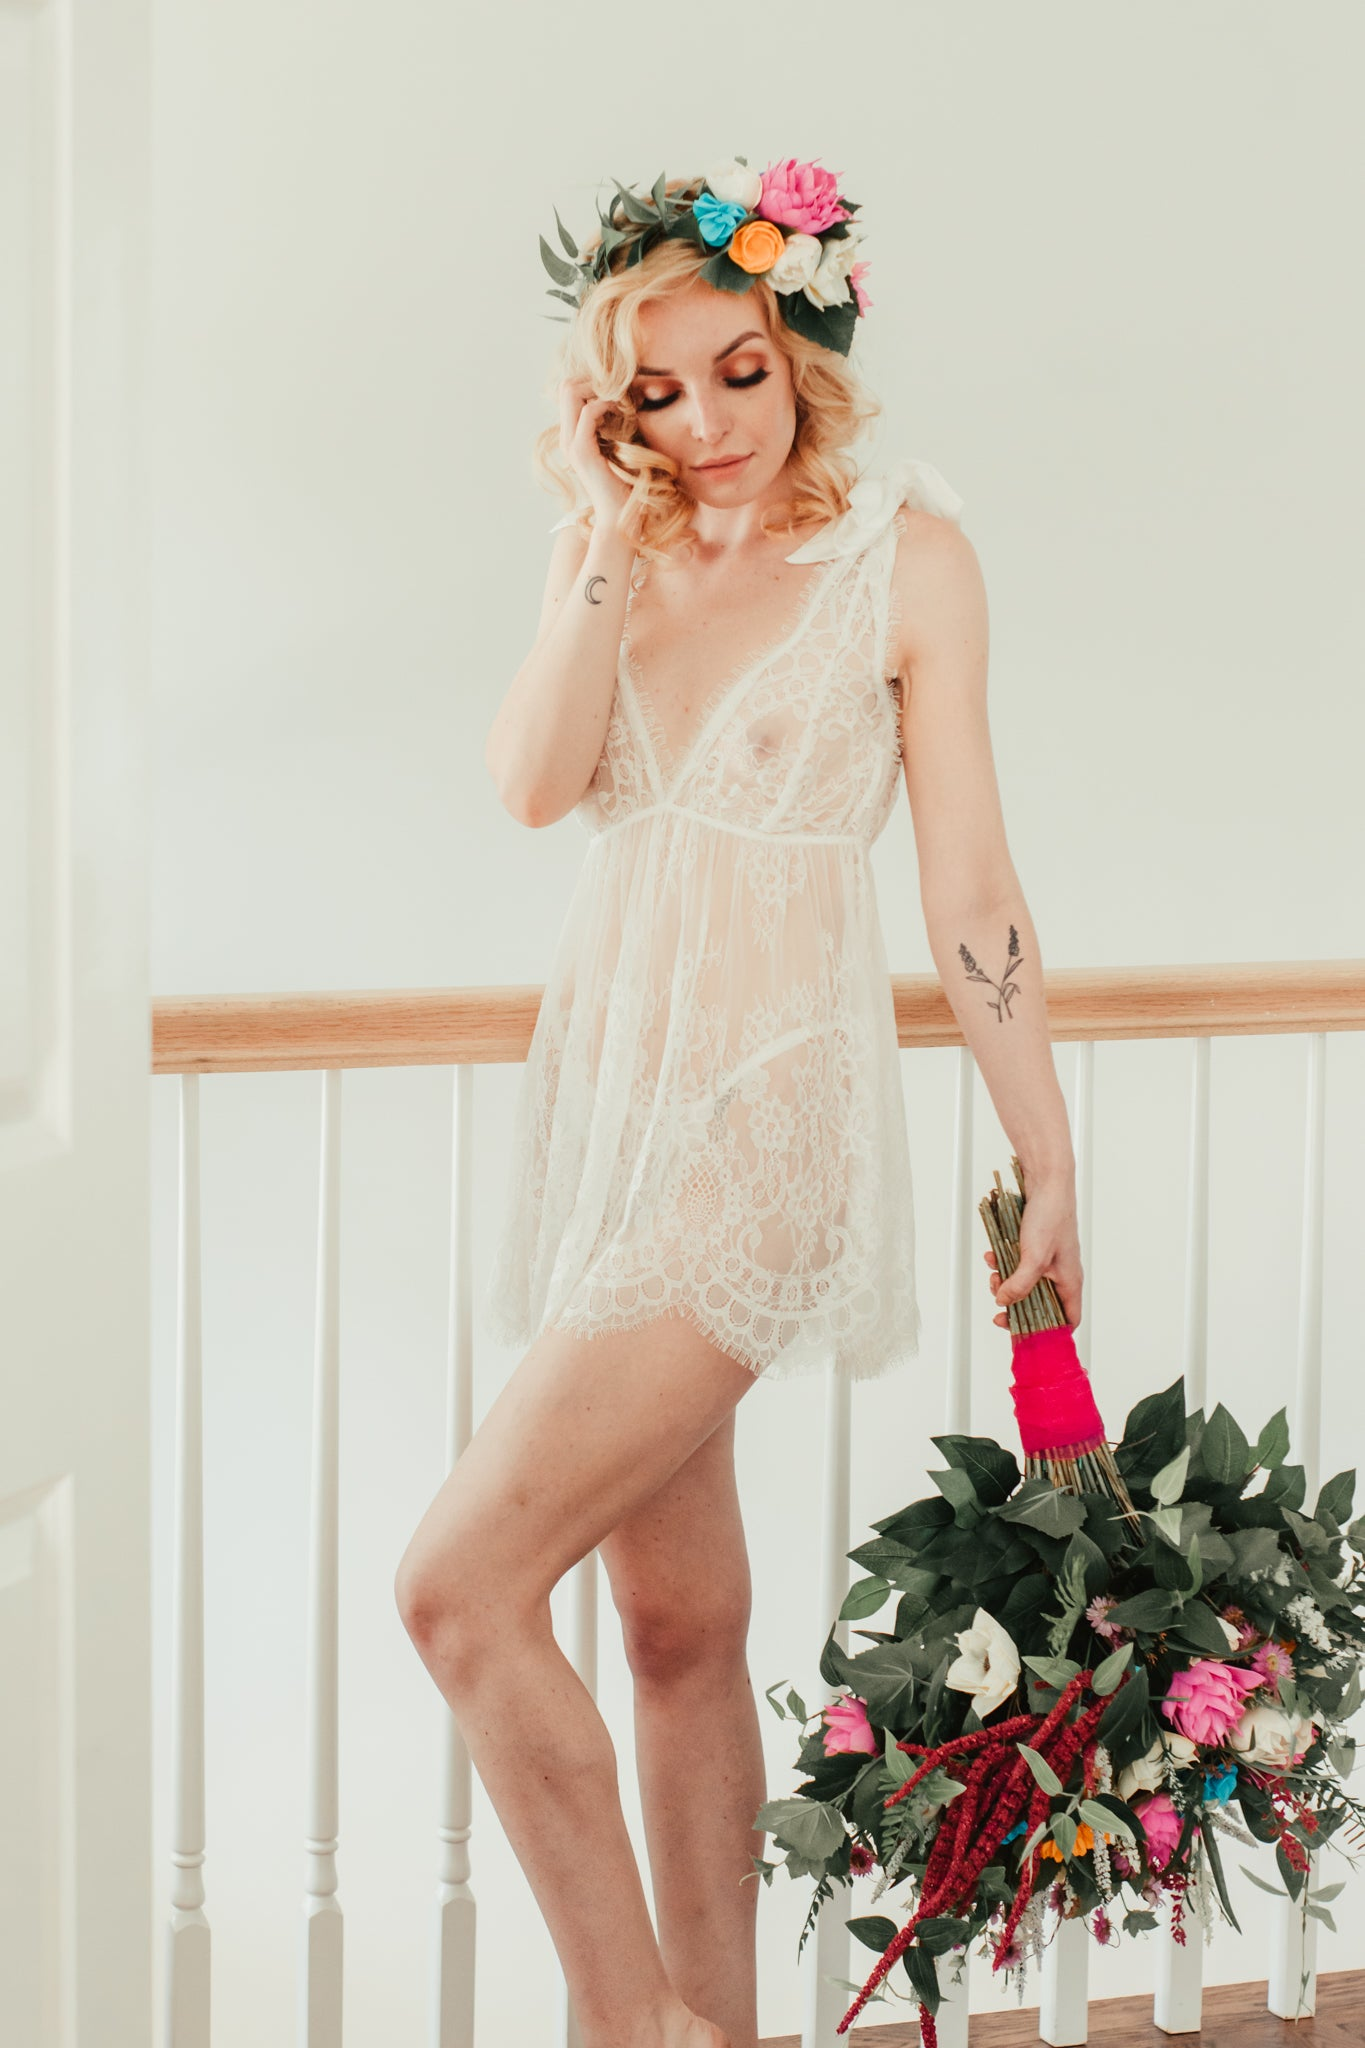 White lace babydoll dress with panty